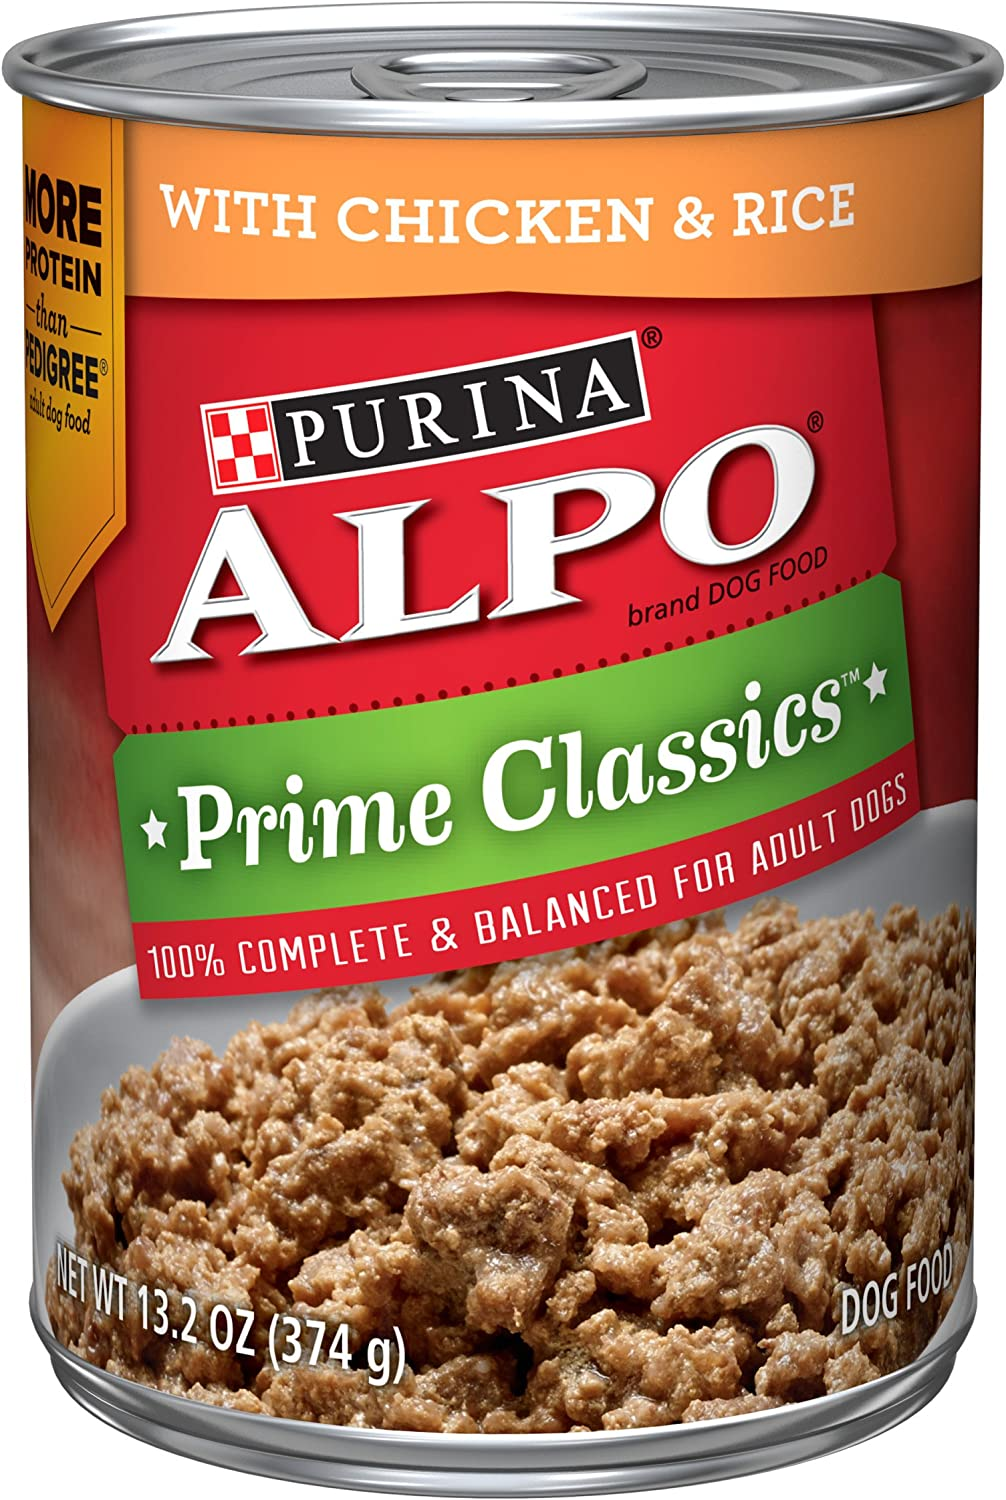 Purina ALPO Wet Dog Food, Prime Classics With Chicken & Rice - (12) 13.2 oz. Cans